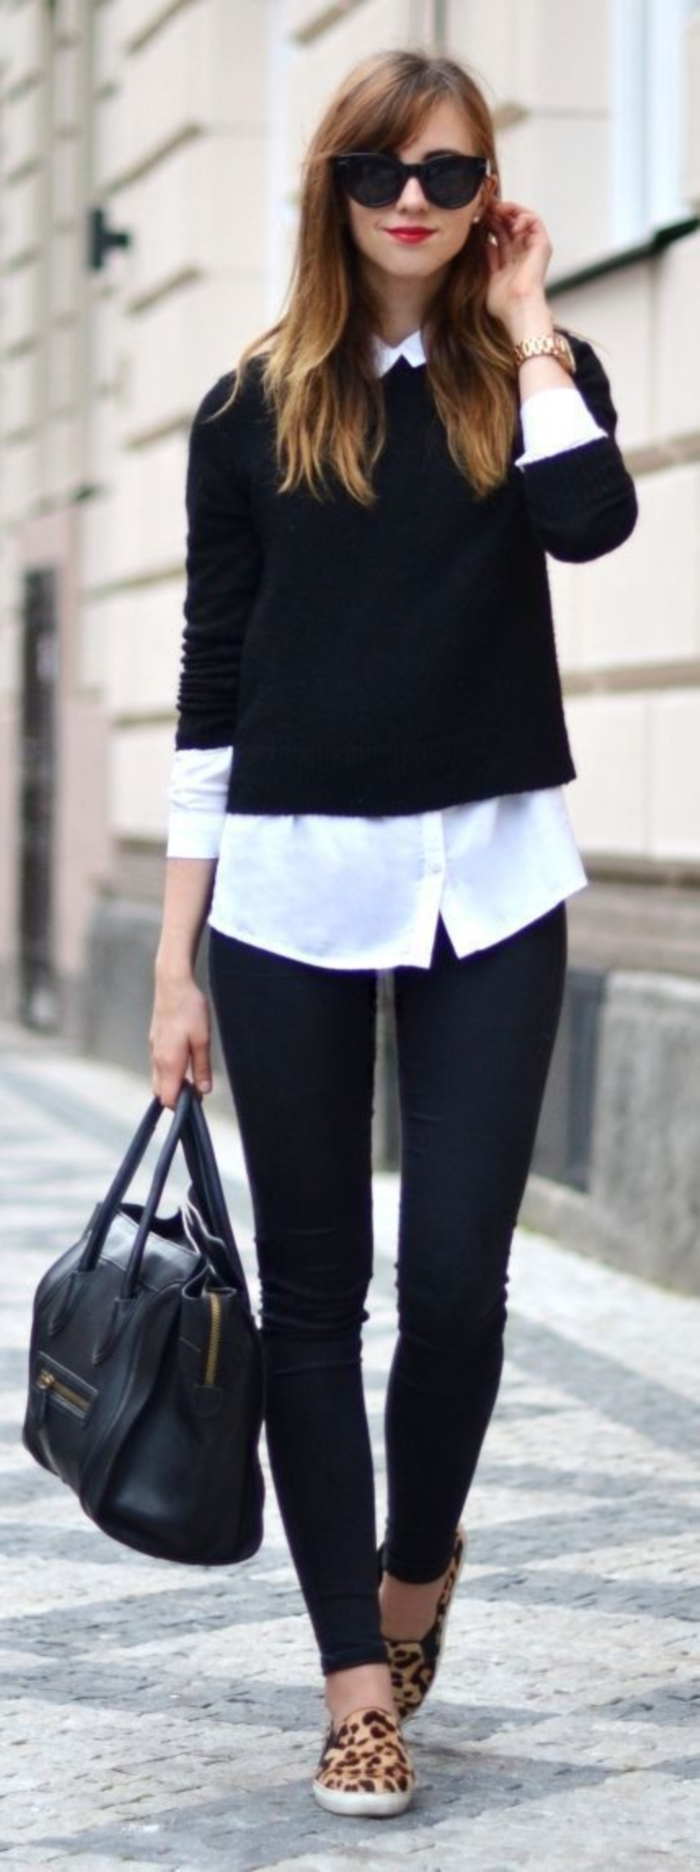 Balck+white fashion (21)